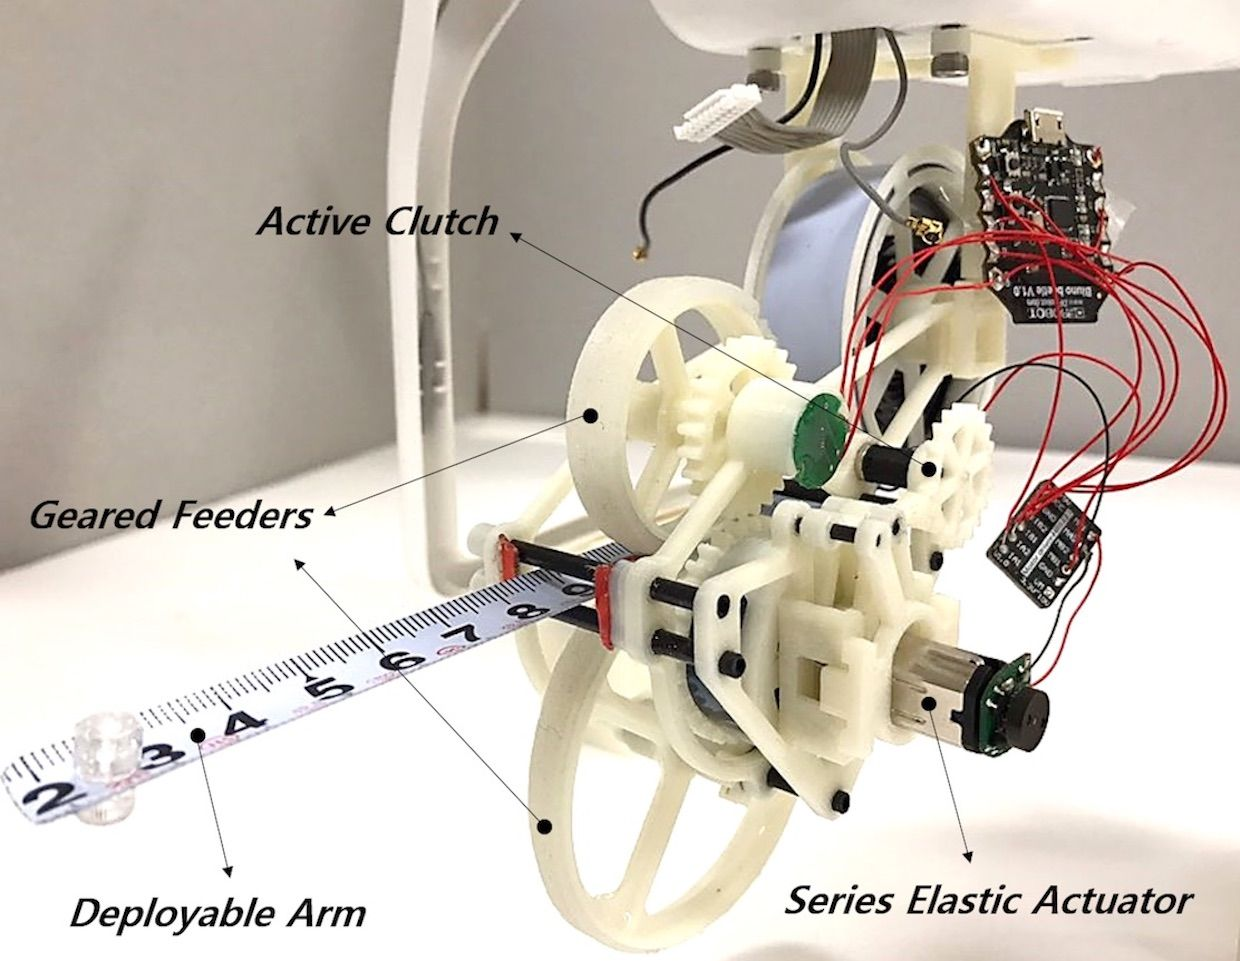 The robotic chameleon tongue mechanism